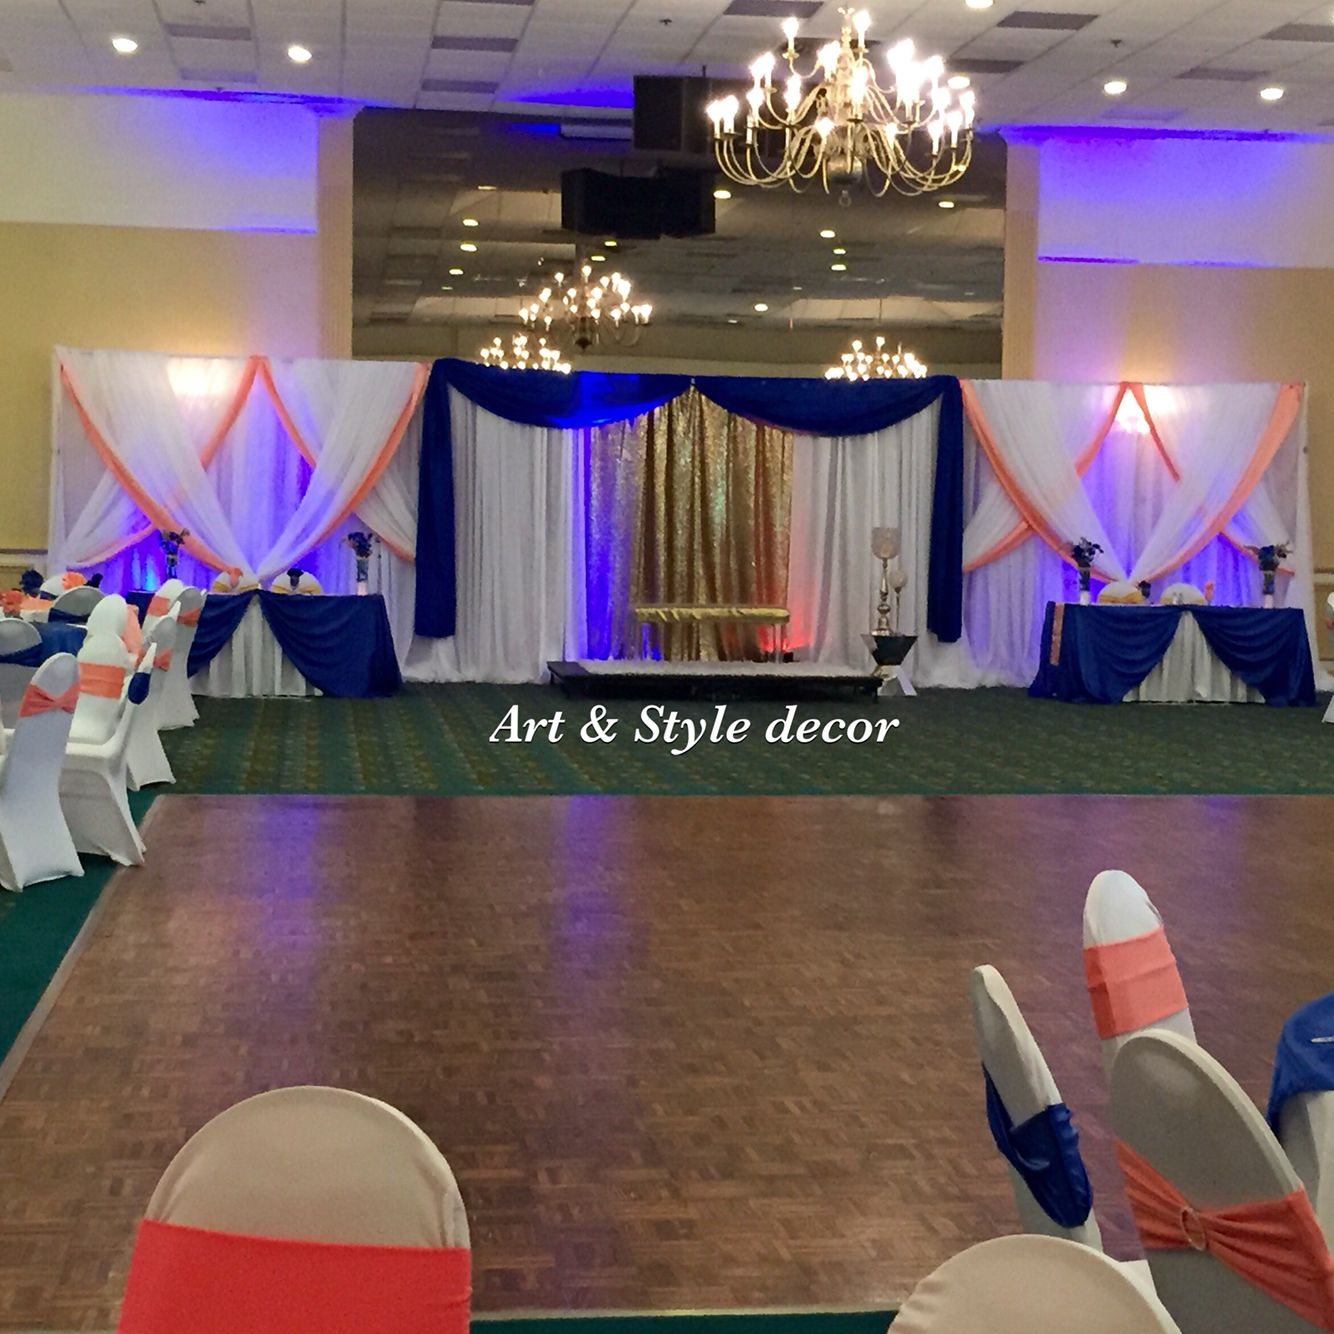 Blue And Gold Wedding Decorations: Royal Blue And Coral Wedding Decor. #artandstyledecor